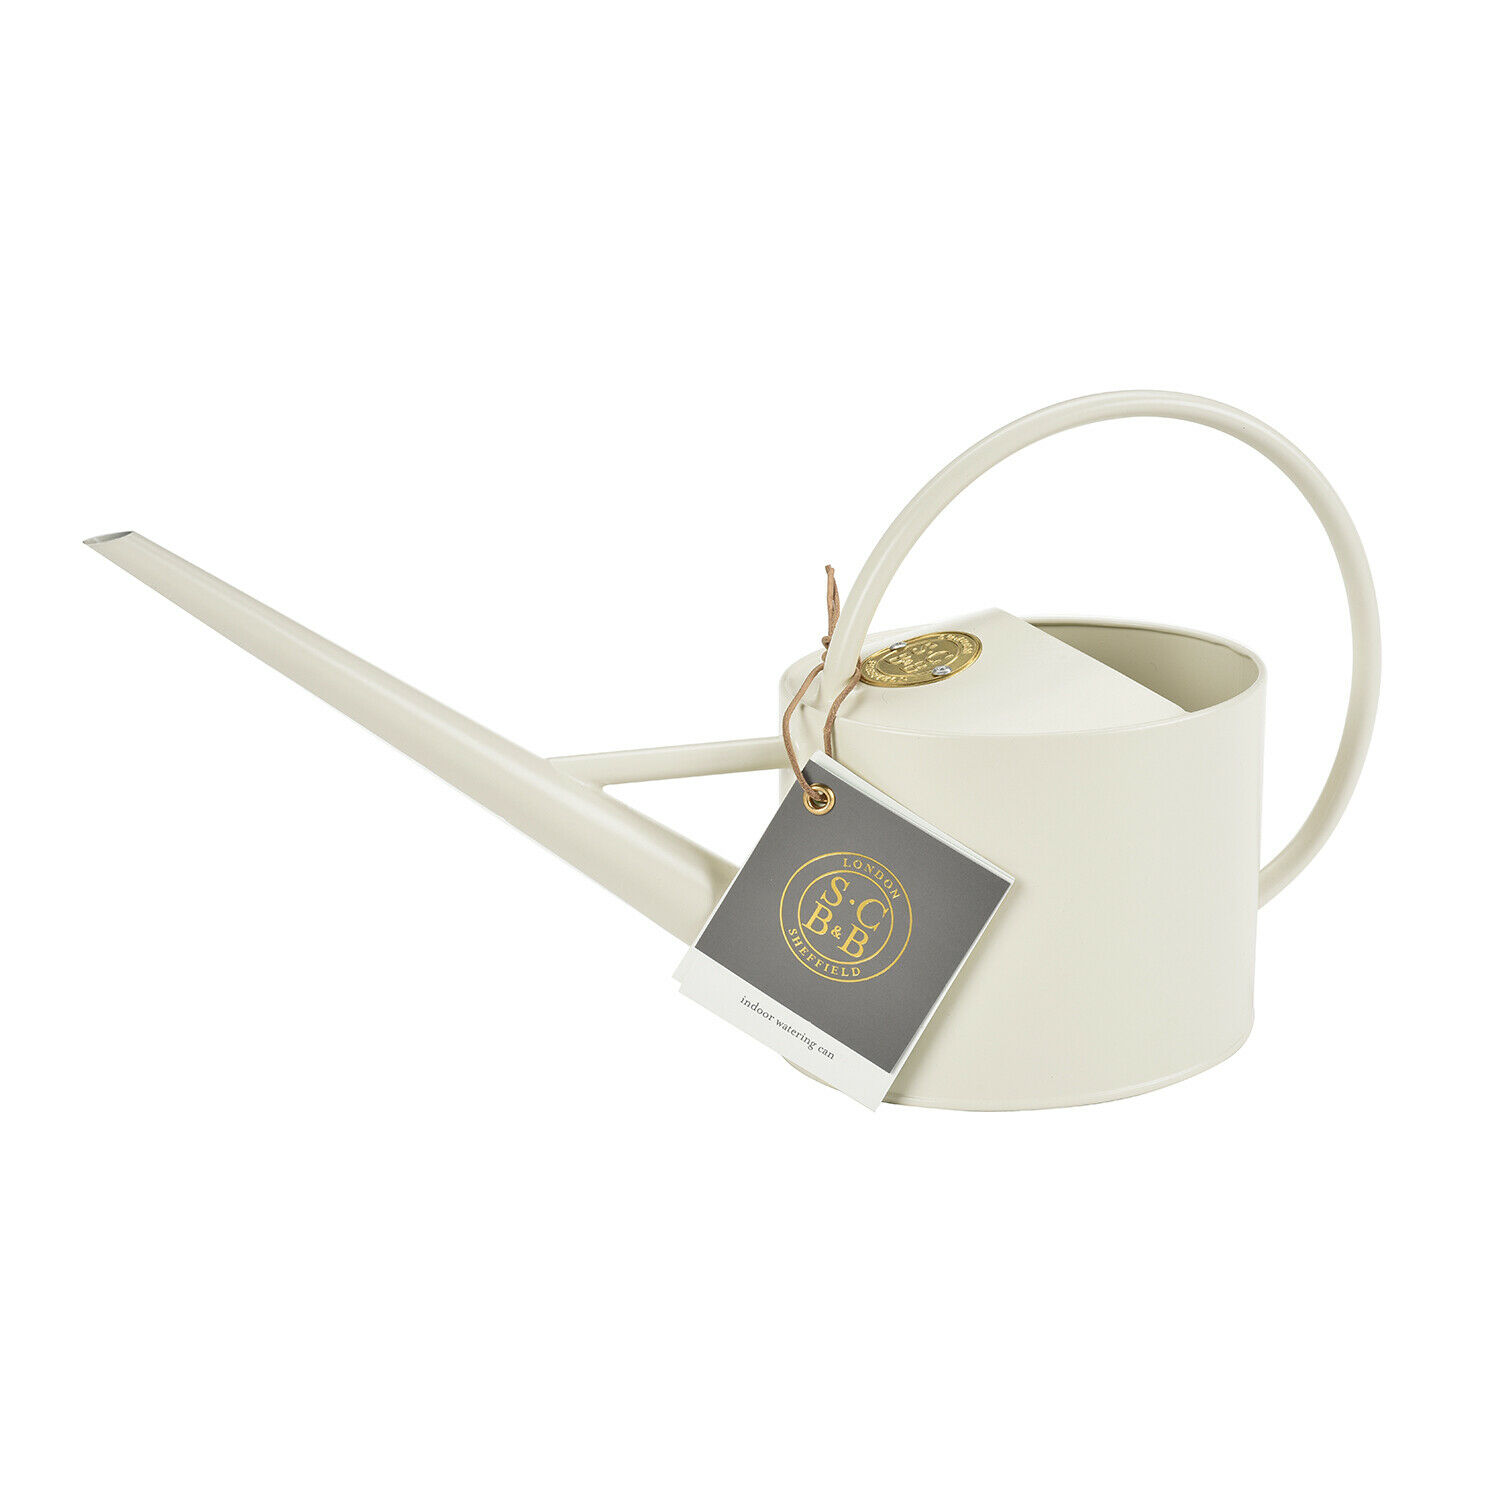 Burgon & Ball – Sophie Conran Buttermilk Greenhouse & Indoor Watering Can